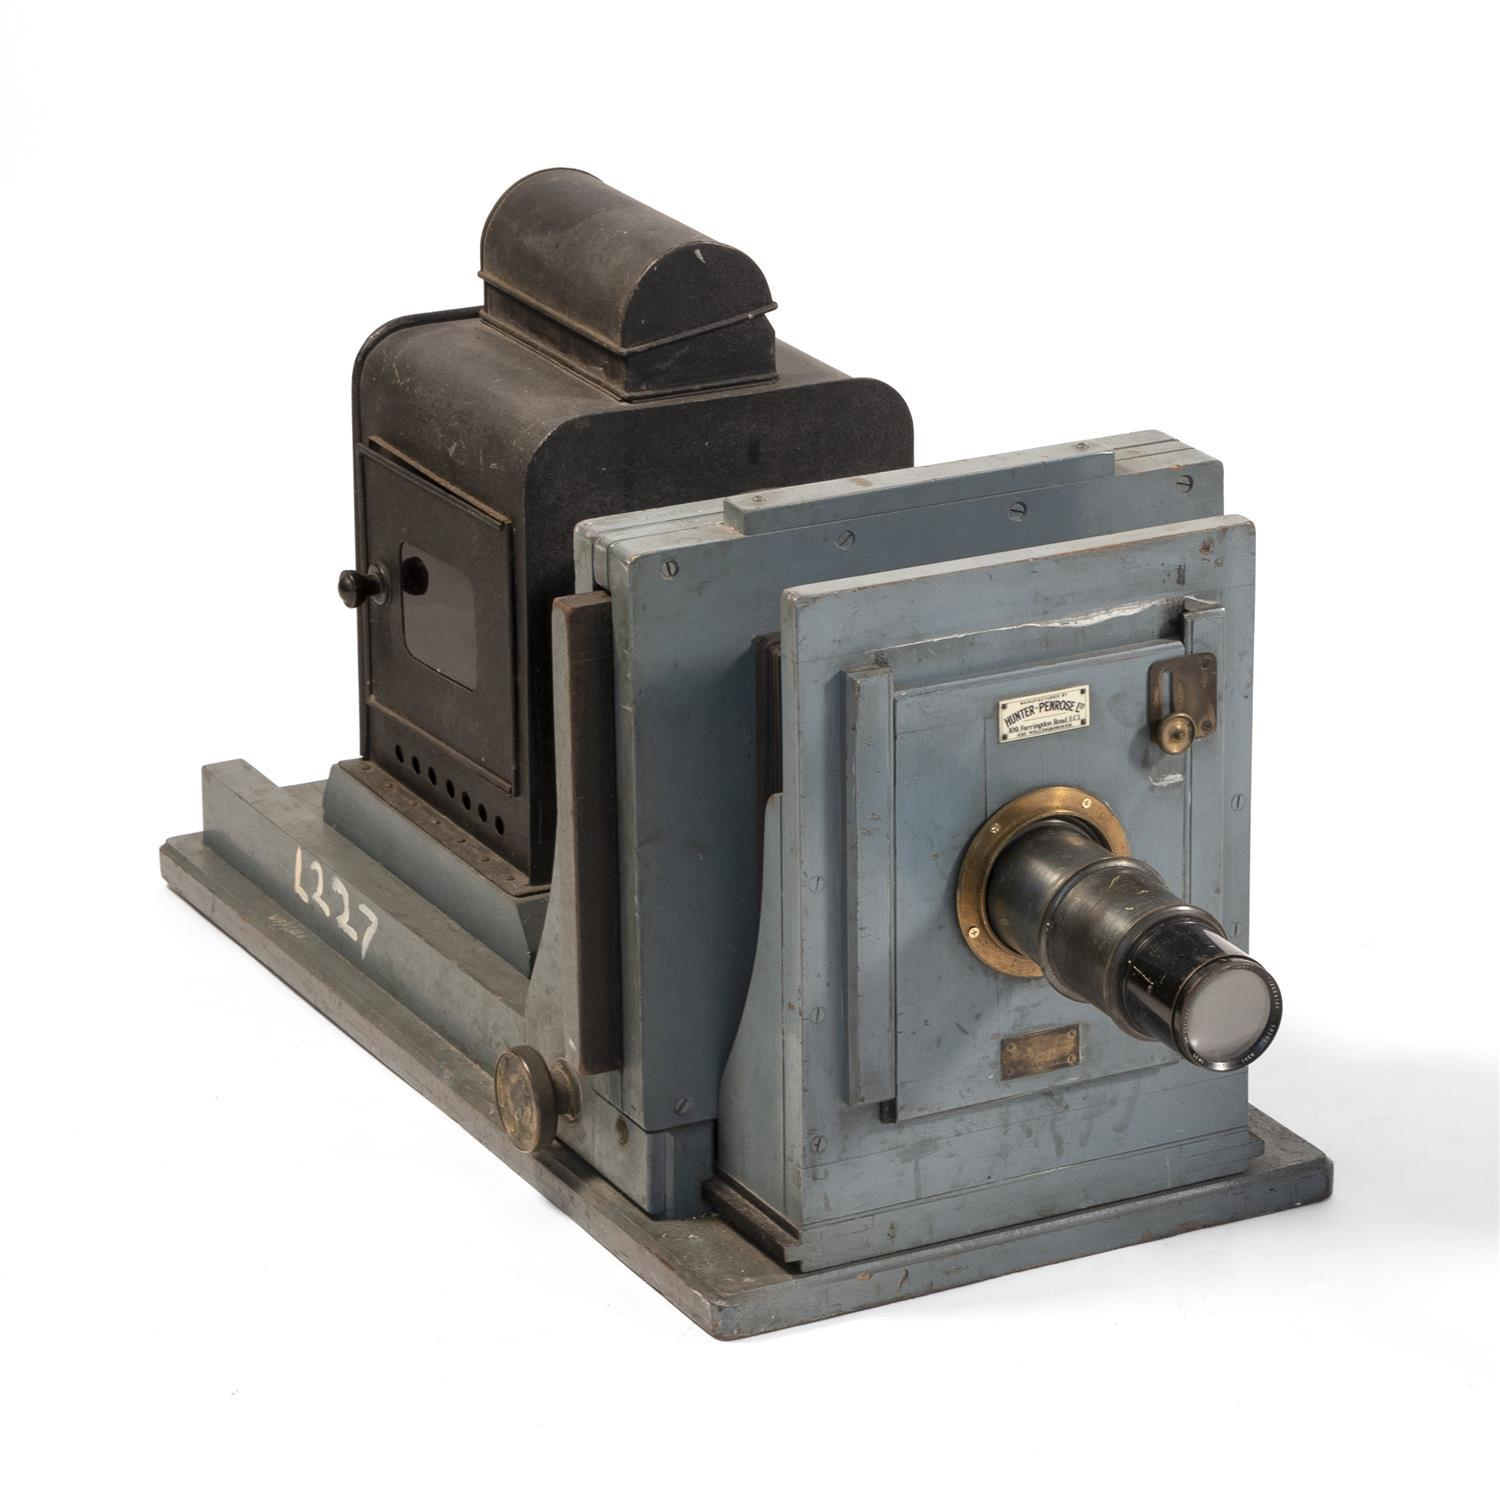 PROJECTOR Manufactured by Hunter-Penrose LTD. Aldis-Butcher projection lens. Housed in a blue/gray-painted wood and metal body. Heig...